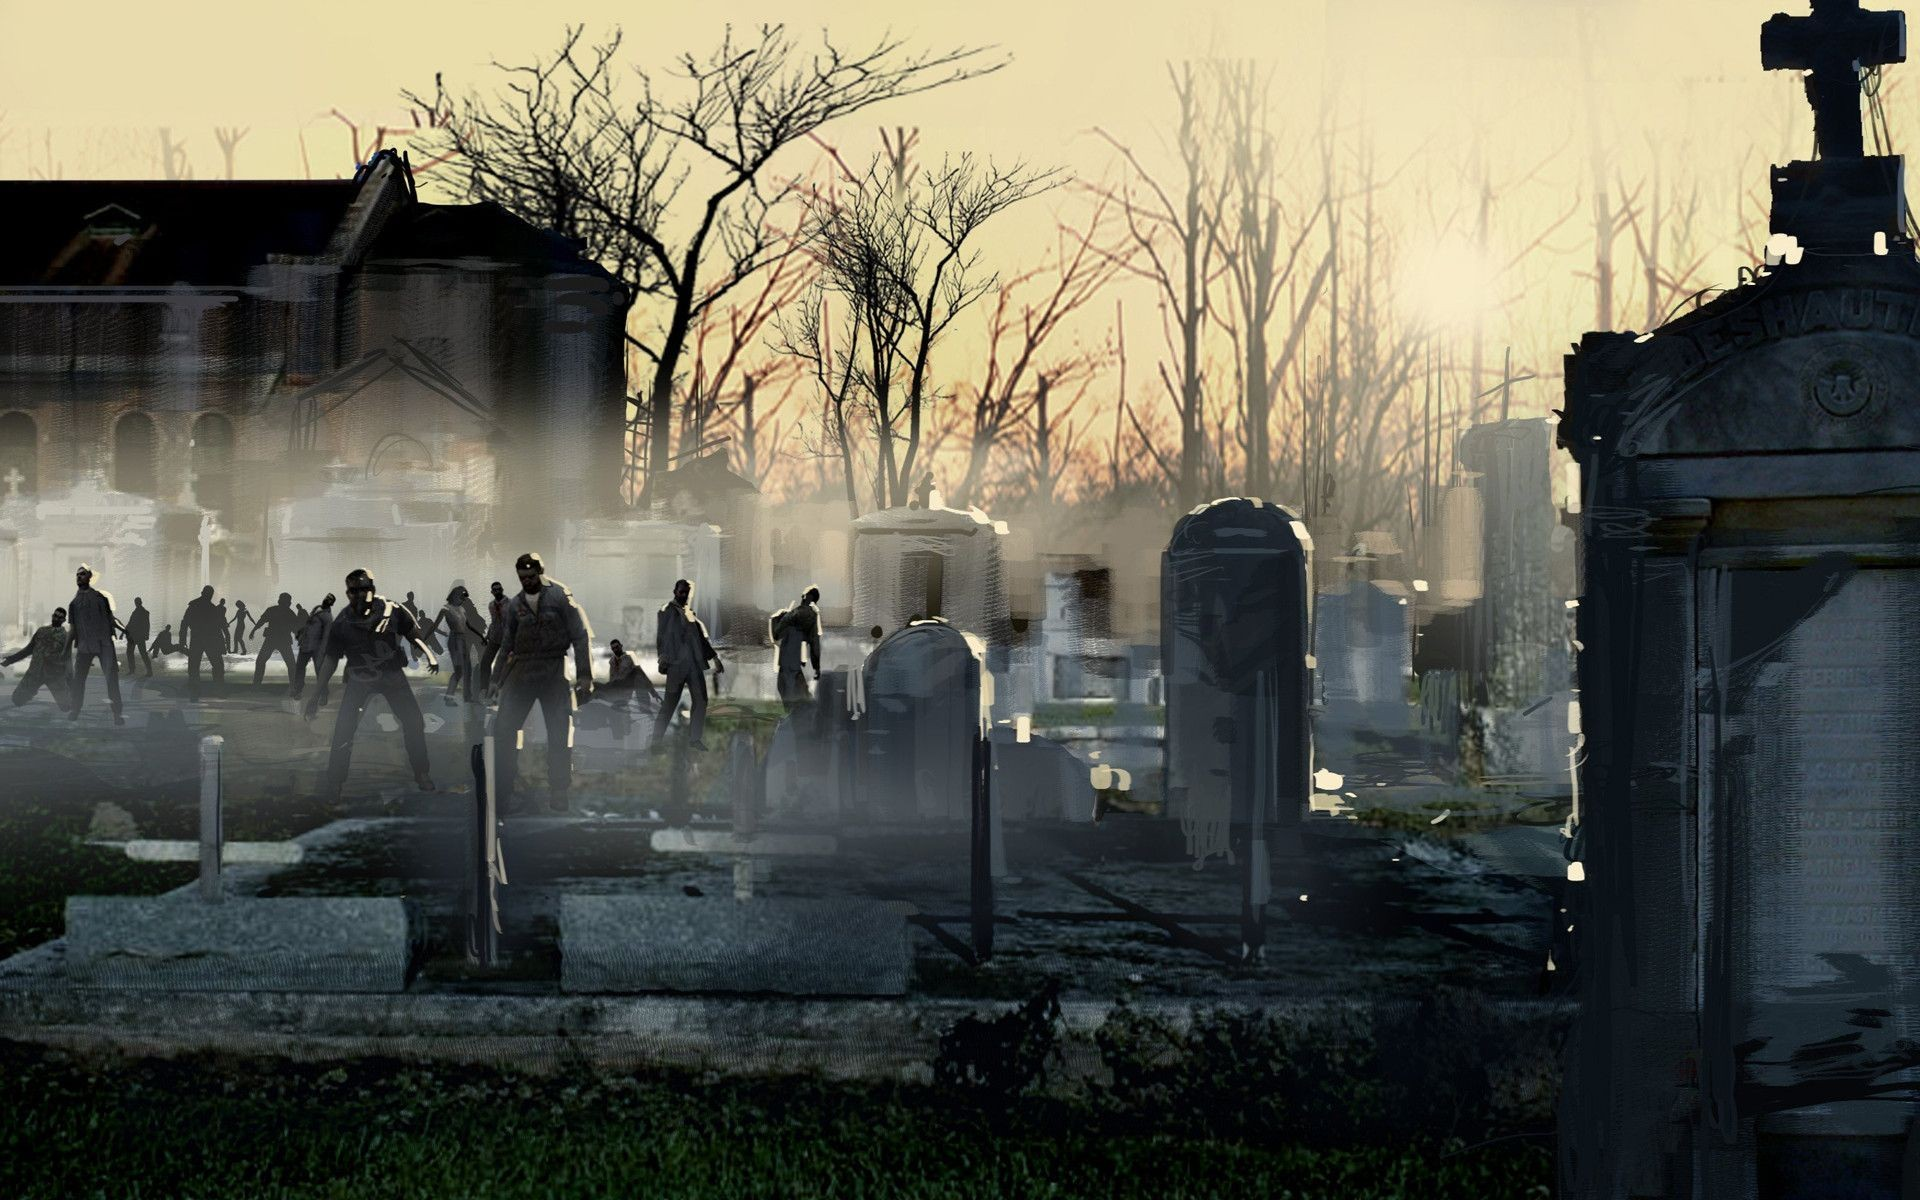 Zombies Wallpaper Download Free Cool Full Hd Backgrounds For